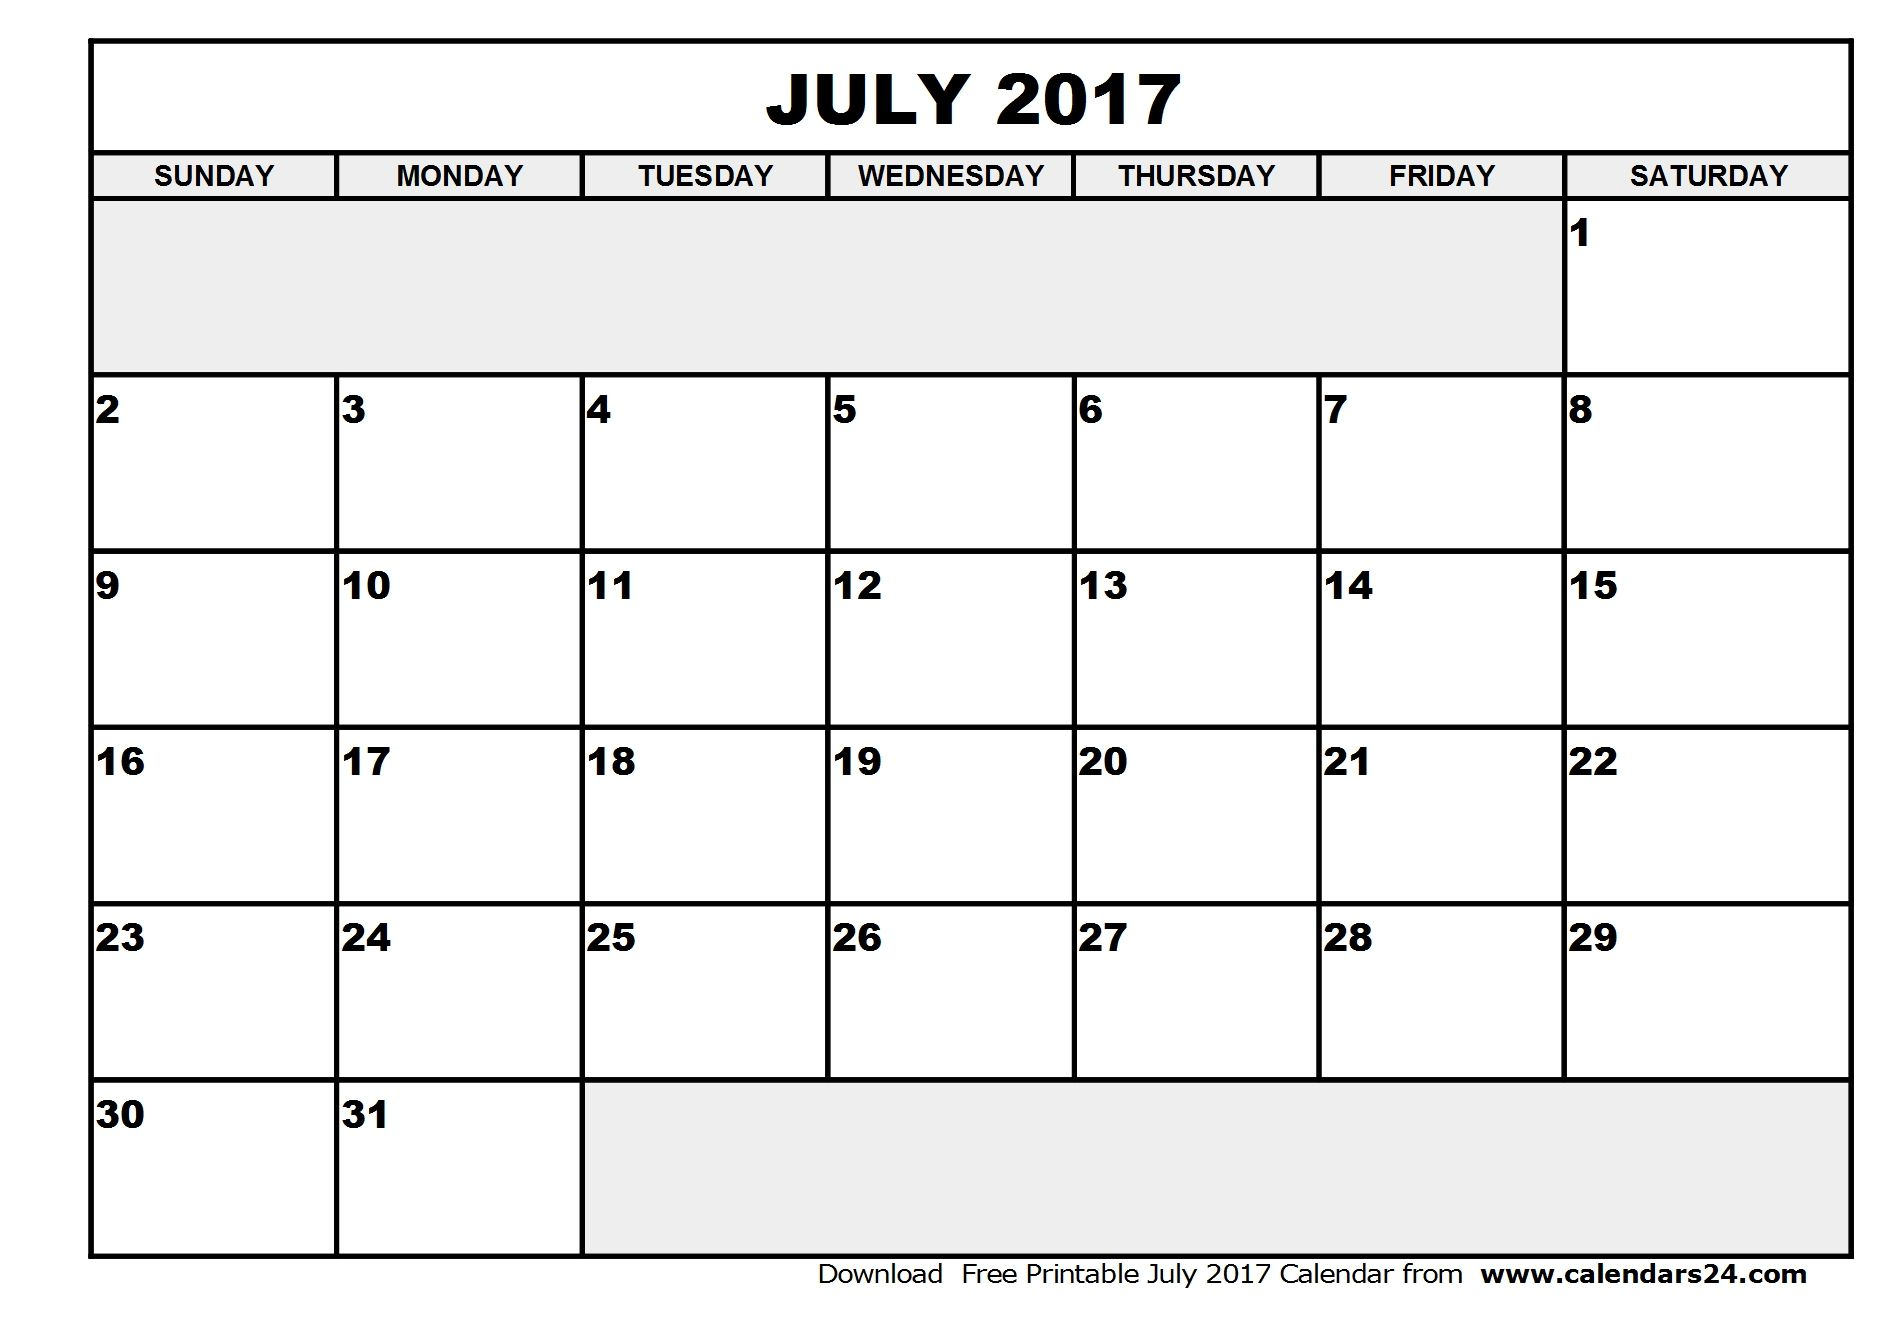 Free July Printable Calendar With Holidays